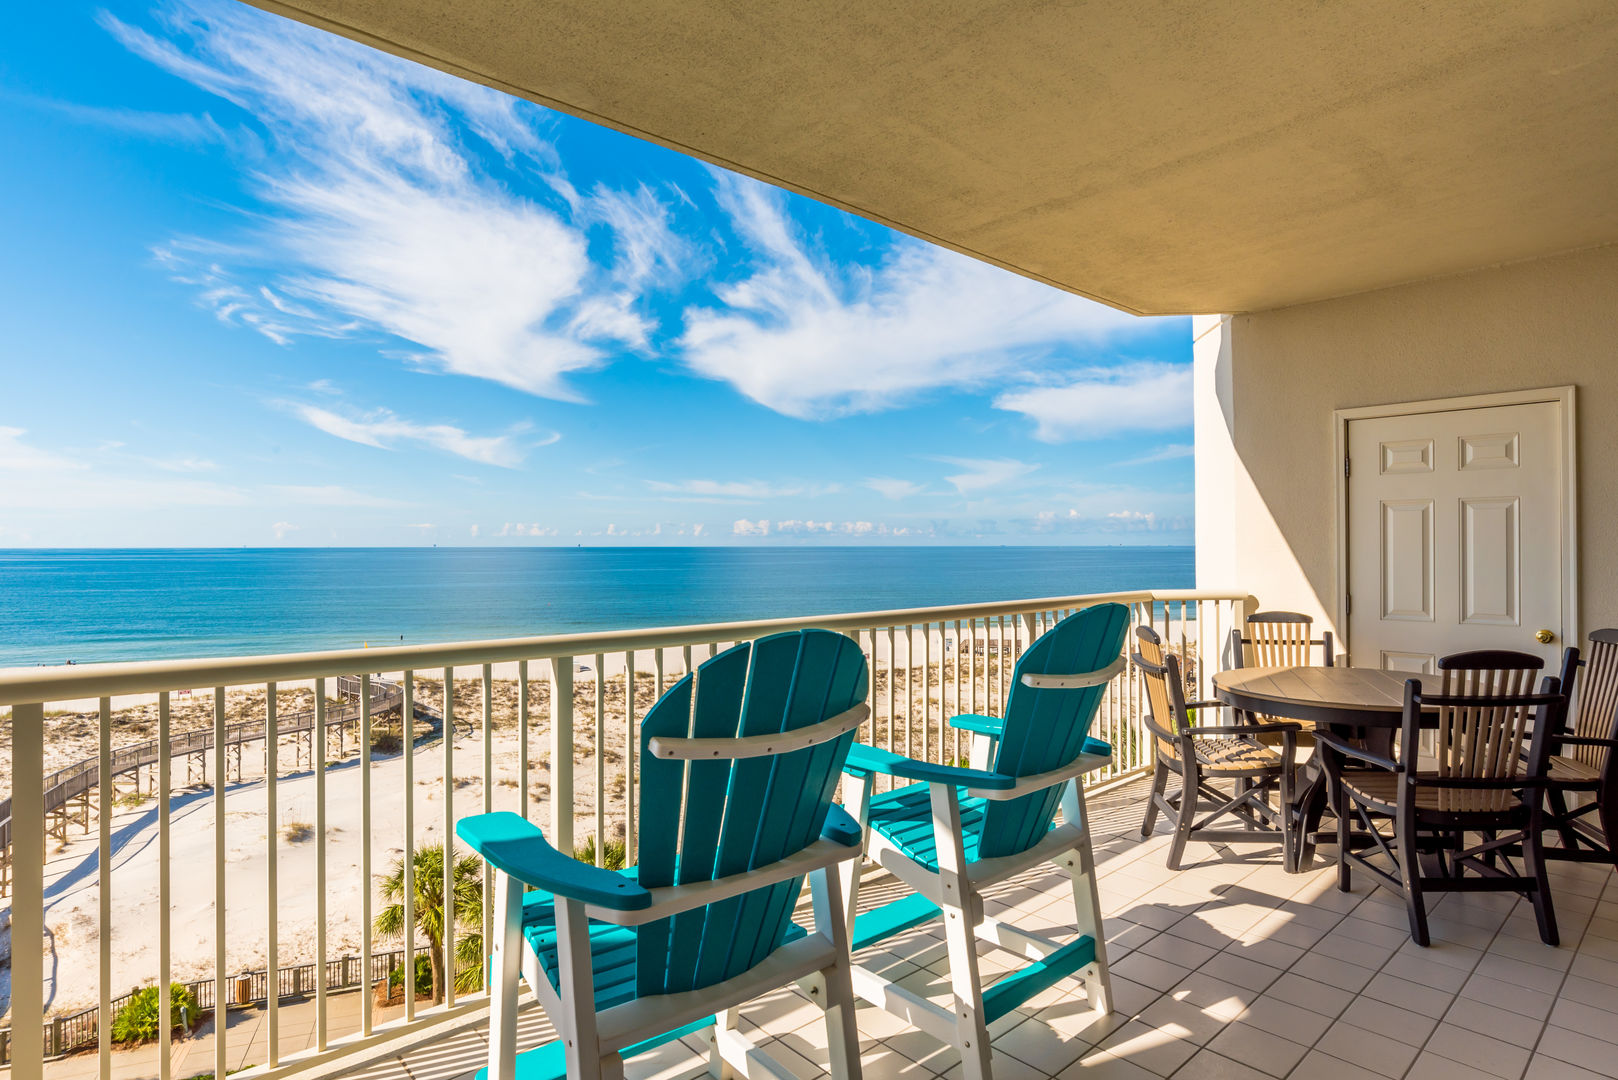 The Balcony with Outdoor Chairs, Table and the Beach View.